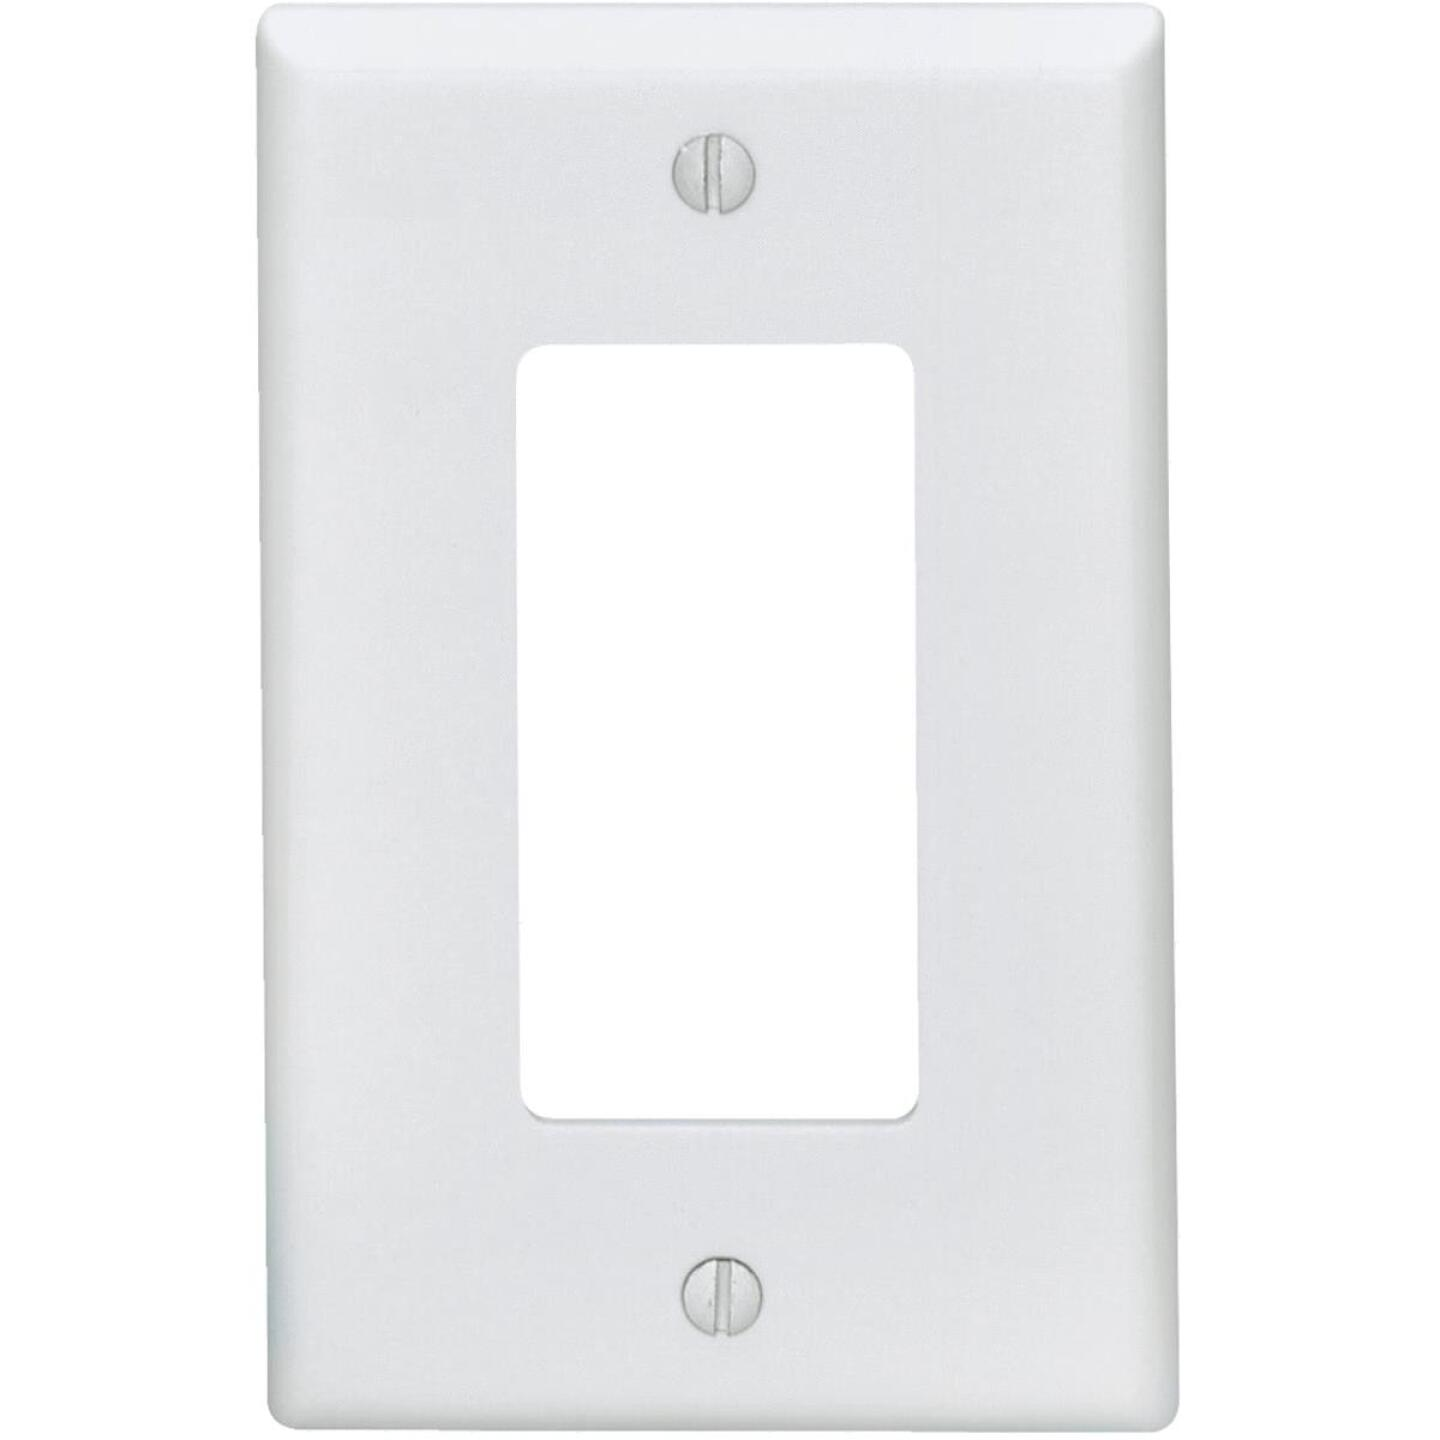 Leviton Mid-Way 1-Gang Smooth Plastic Rocker Decorator Wall Plate, White Image 1